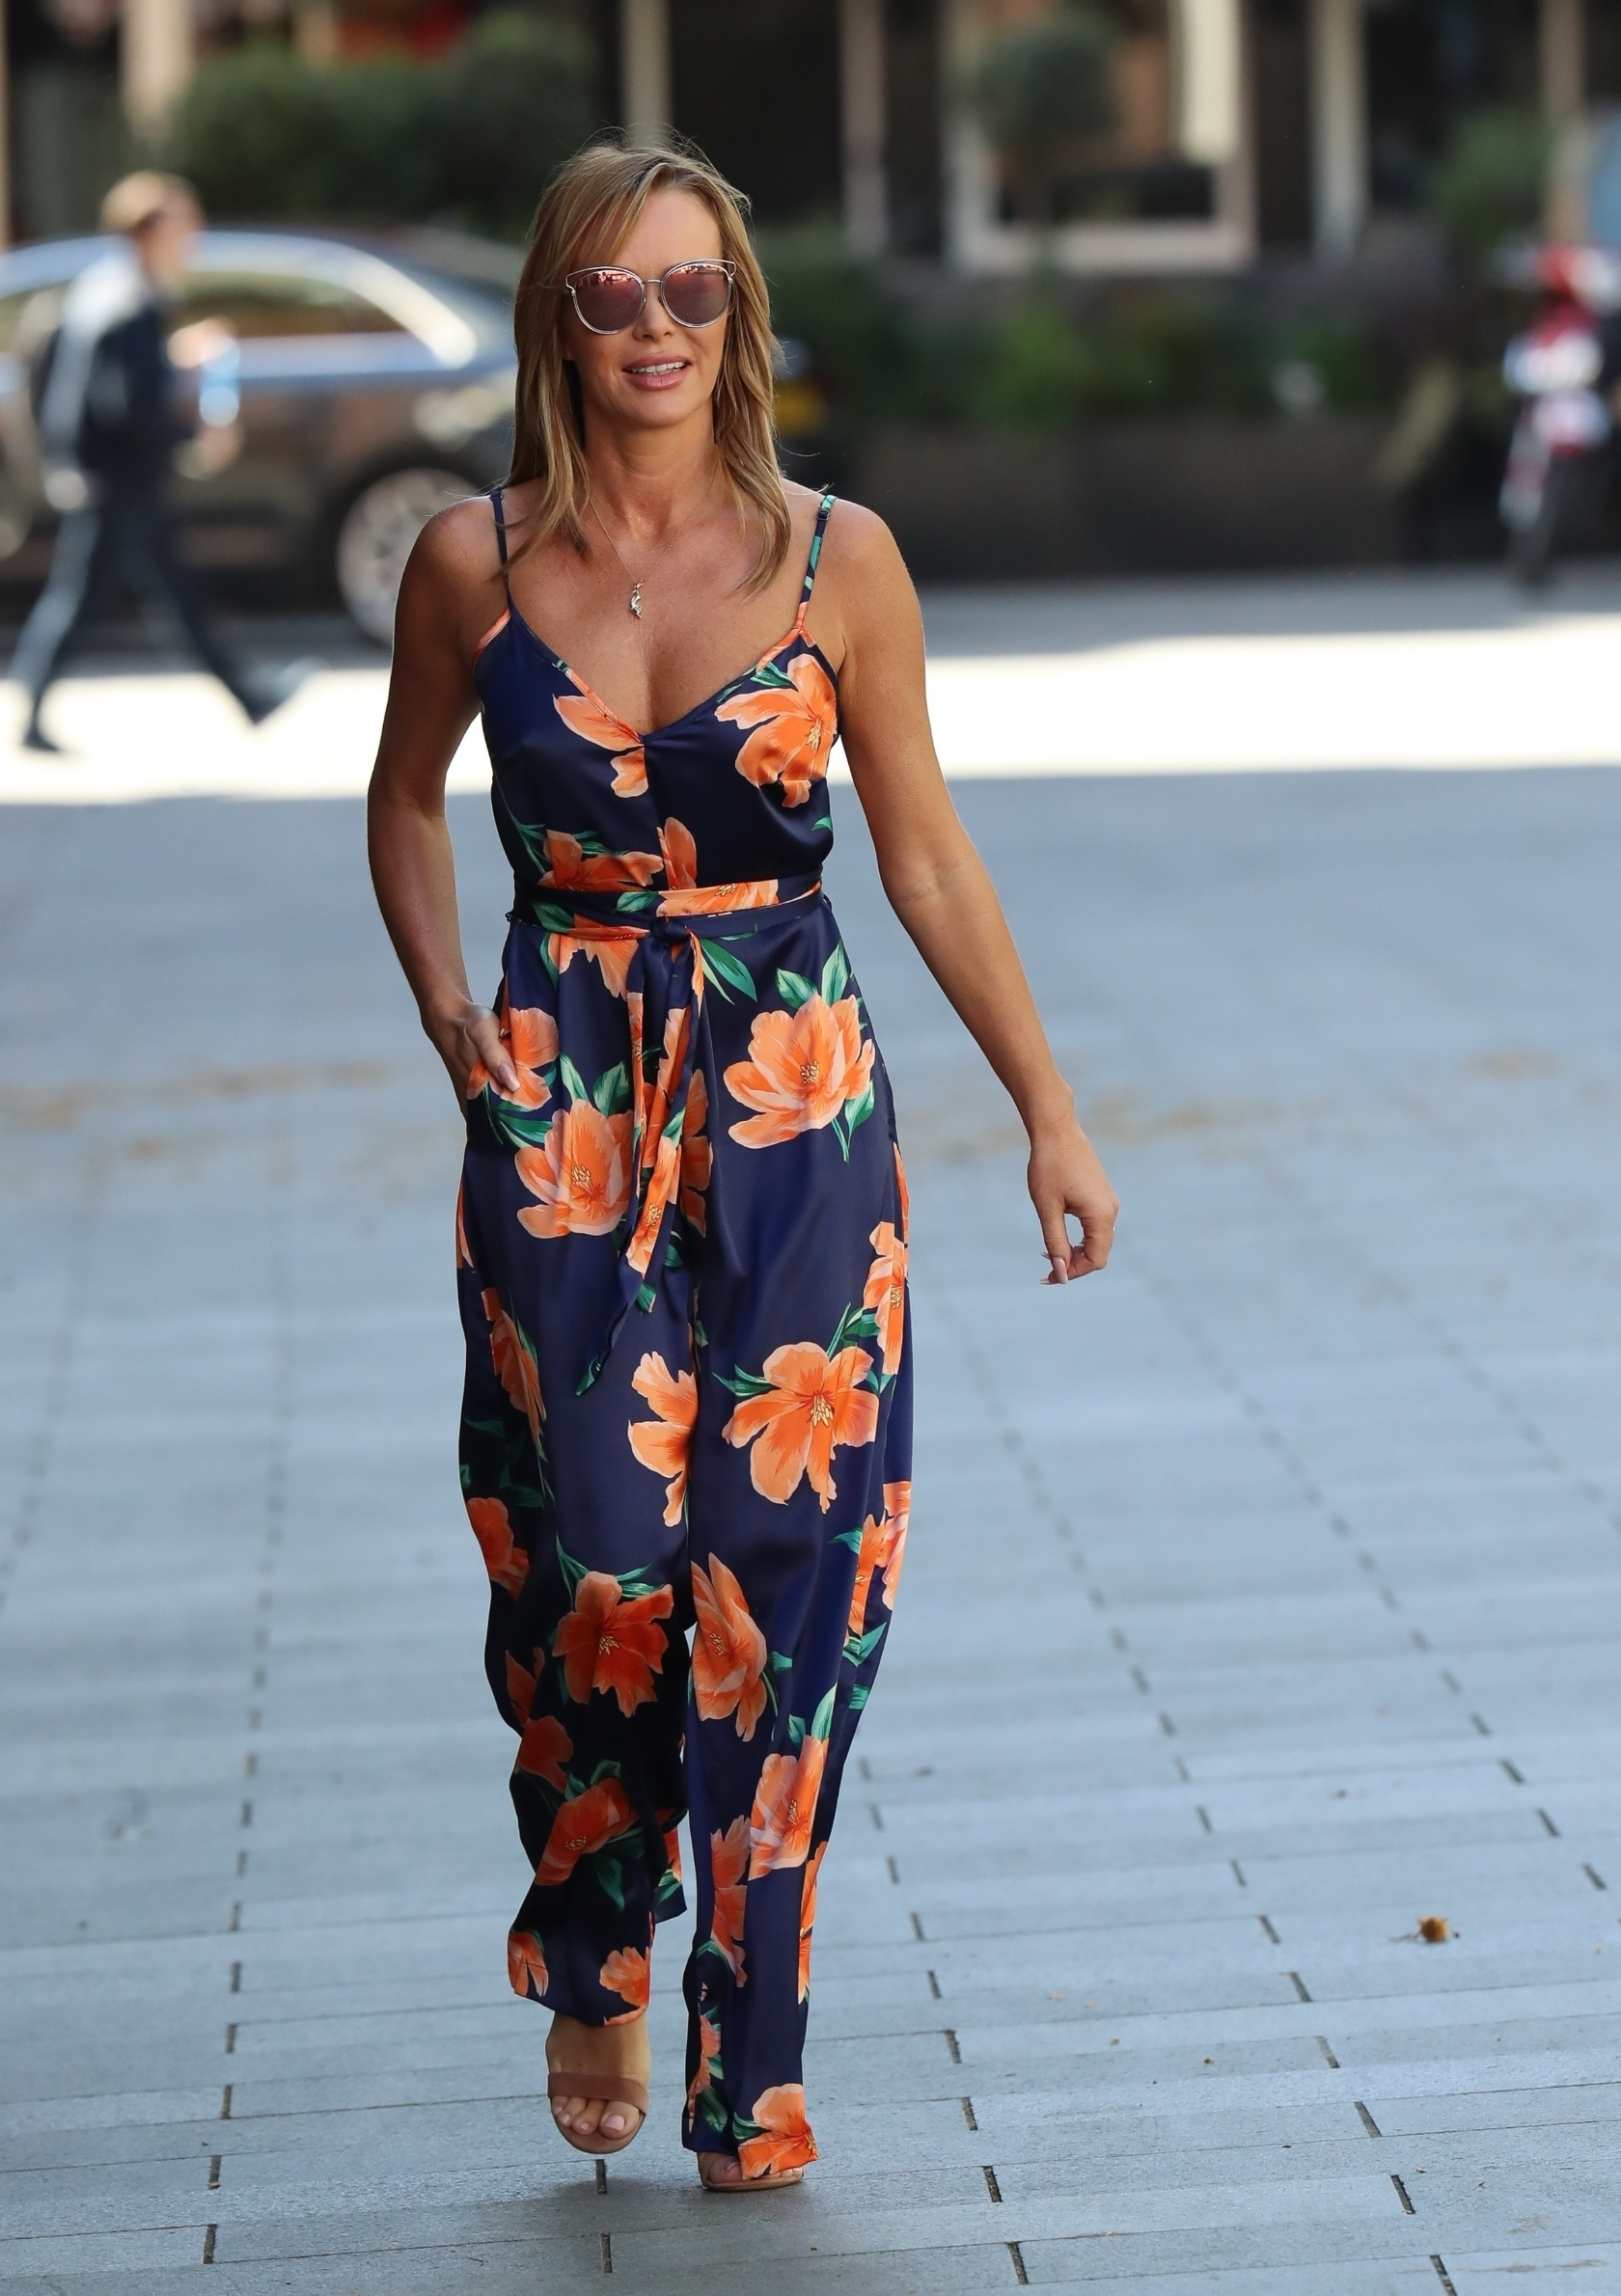 London, UNITED KINGDOM  - Media personality Amanda Holden seen leaving the Global studios the Heart Radio Breakfast show wearing a gun pendant and Silk jumpsuit in London.  *UK Clients - Pictures Containing Children Please Pixelate Face Prior To Publication*, Image: 514357686, License: Rights-managed, Restrictions: , Model Release: no, Credit line: BACKGRID / Backgrid UK / Profimedia